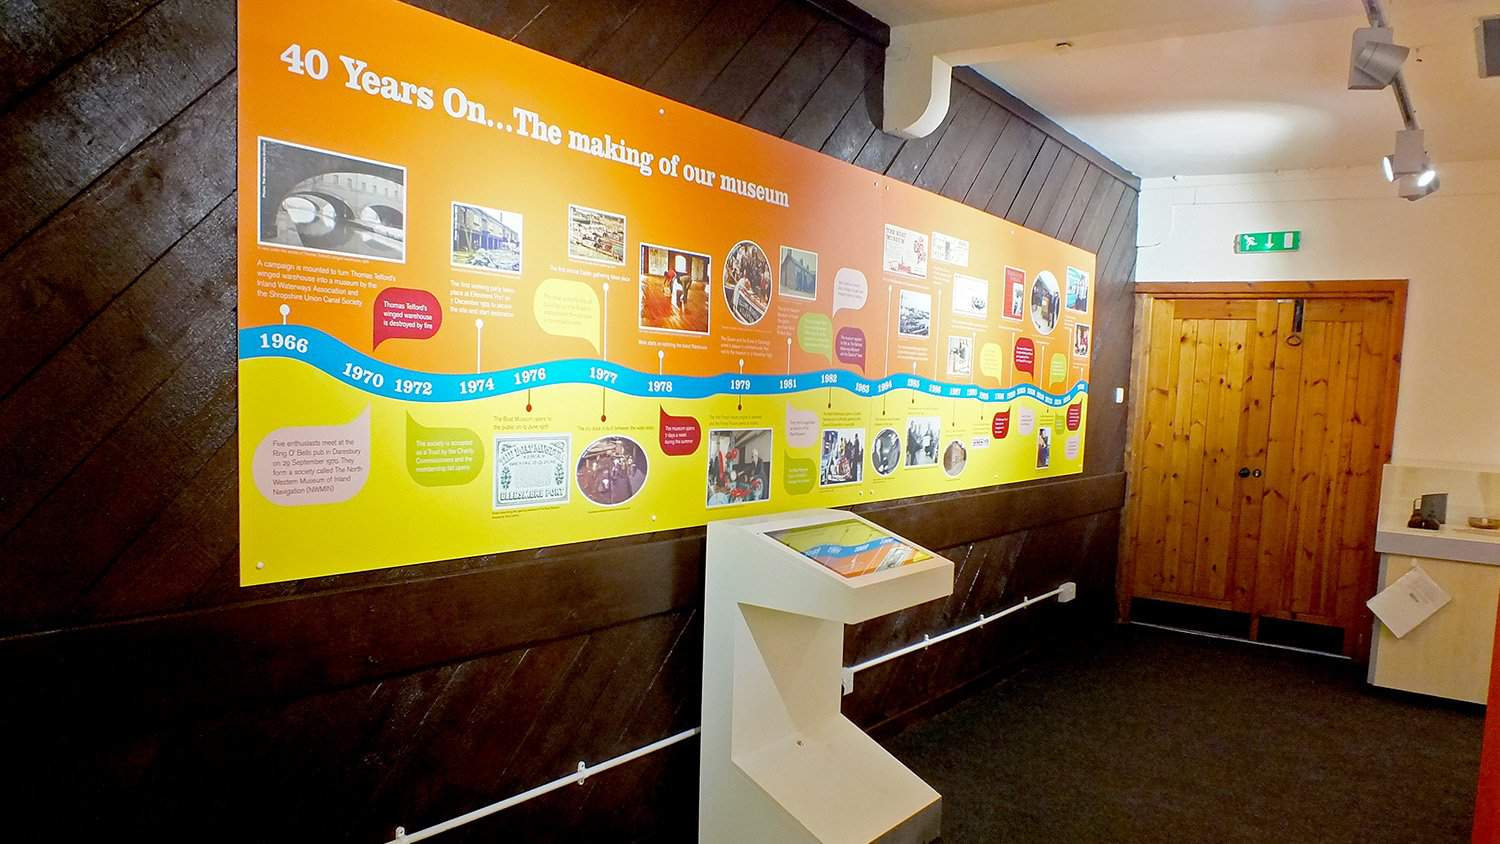 40 Years On Exhibit at National Waterways Museum for Canal & River Trust